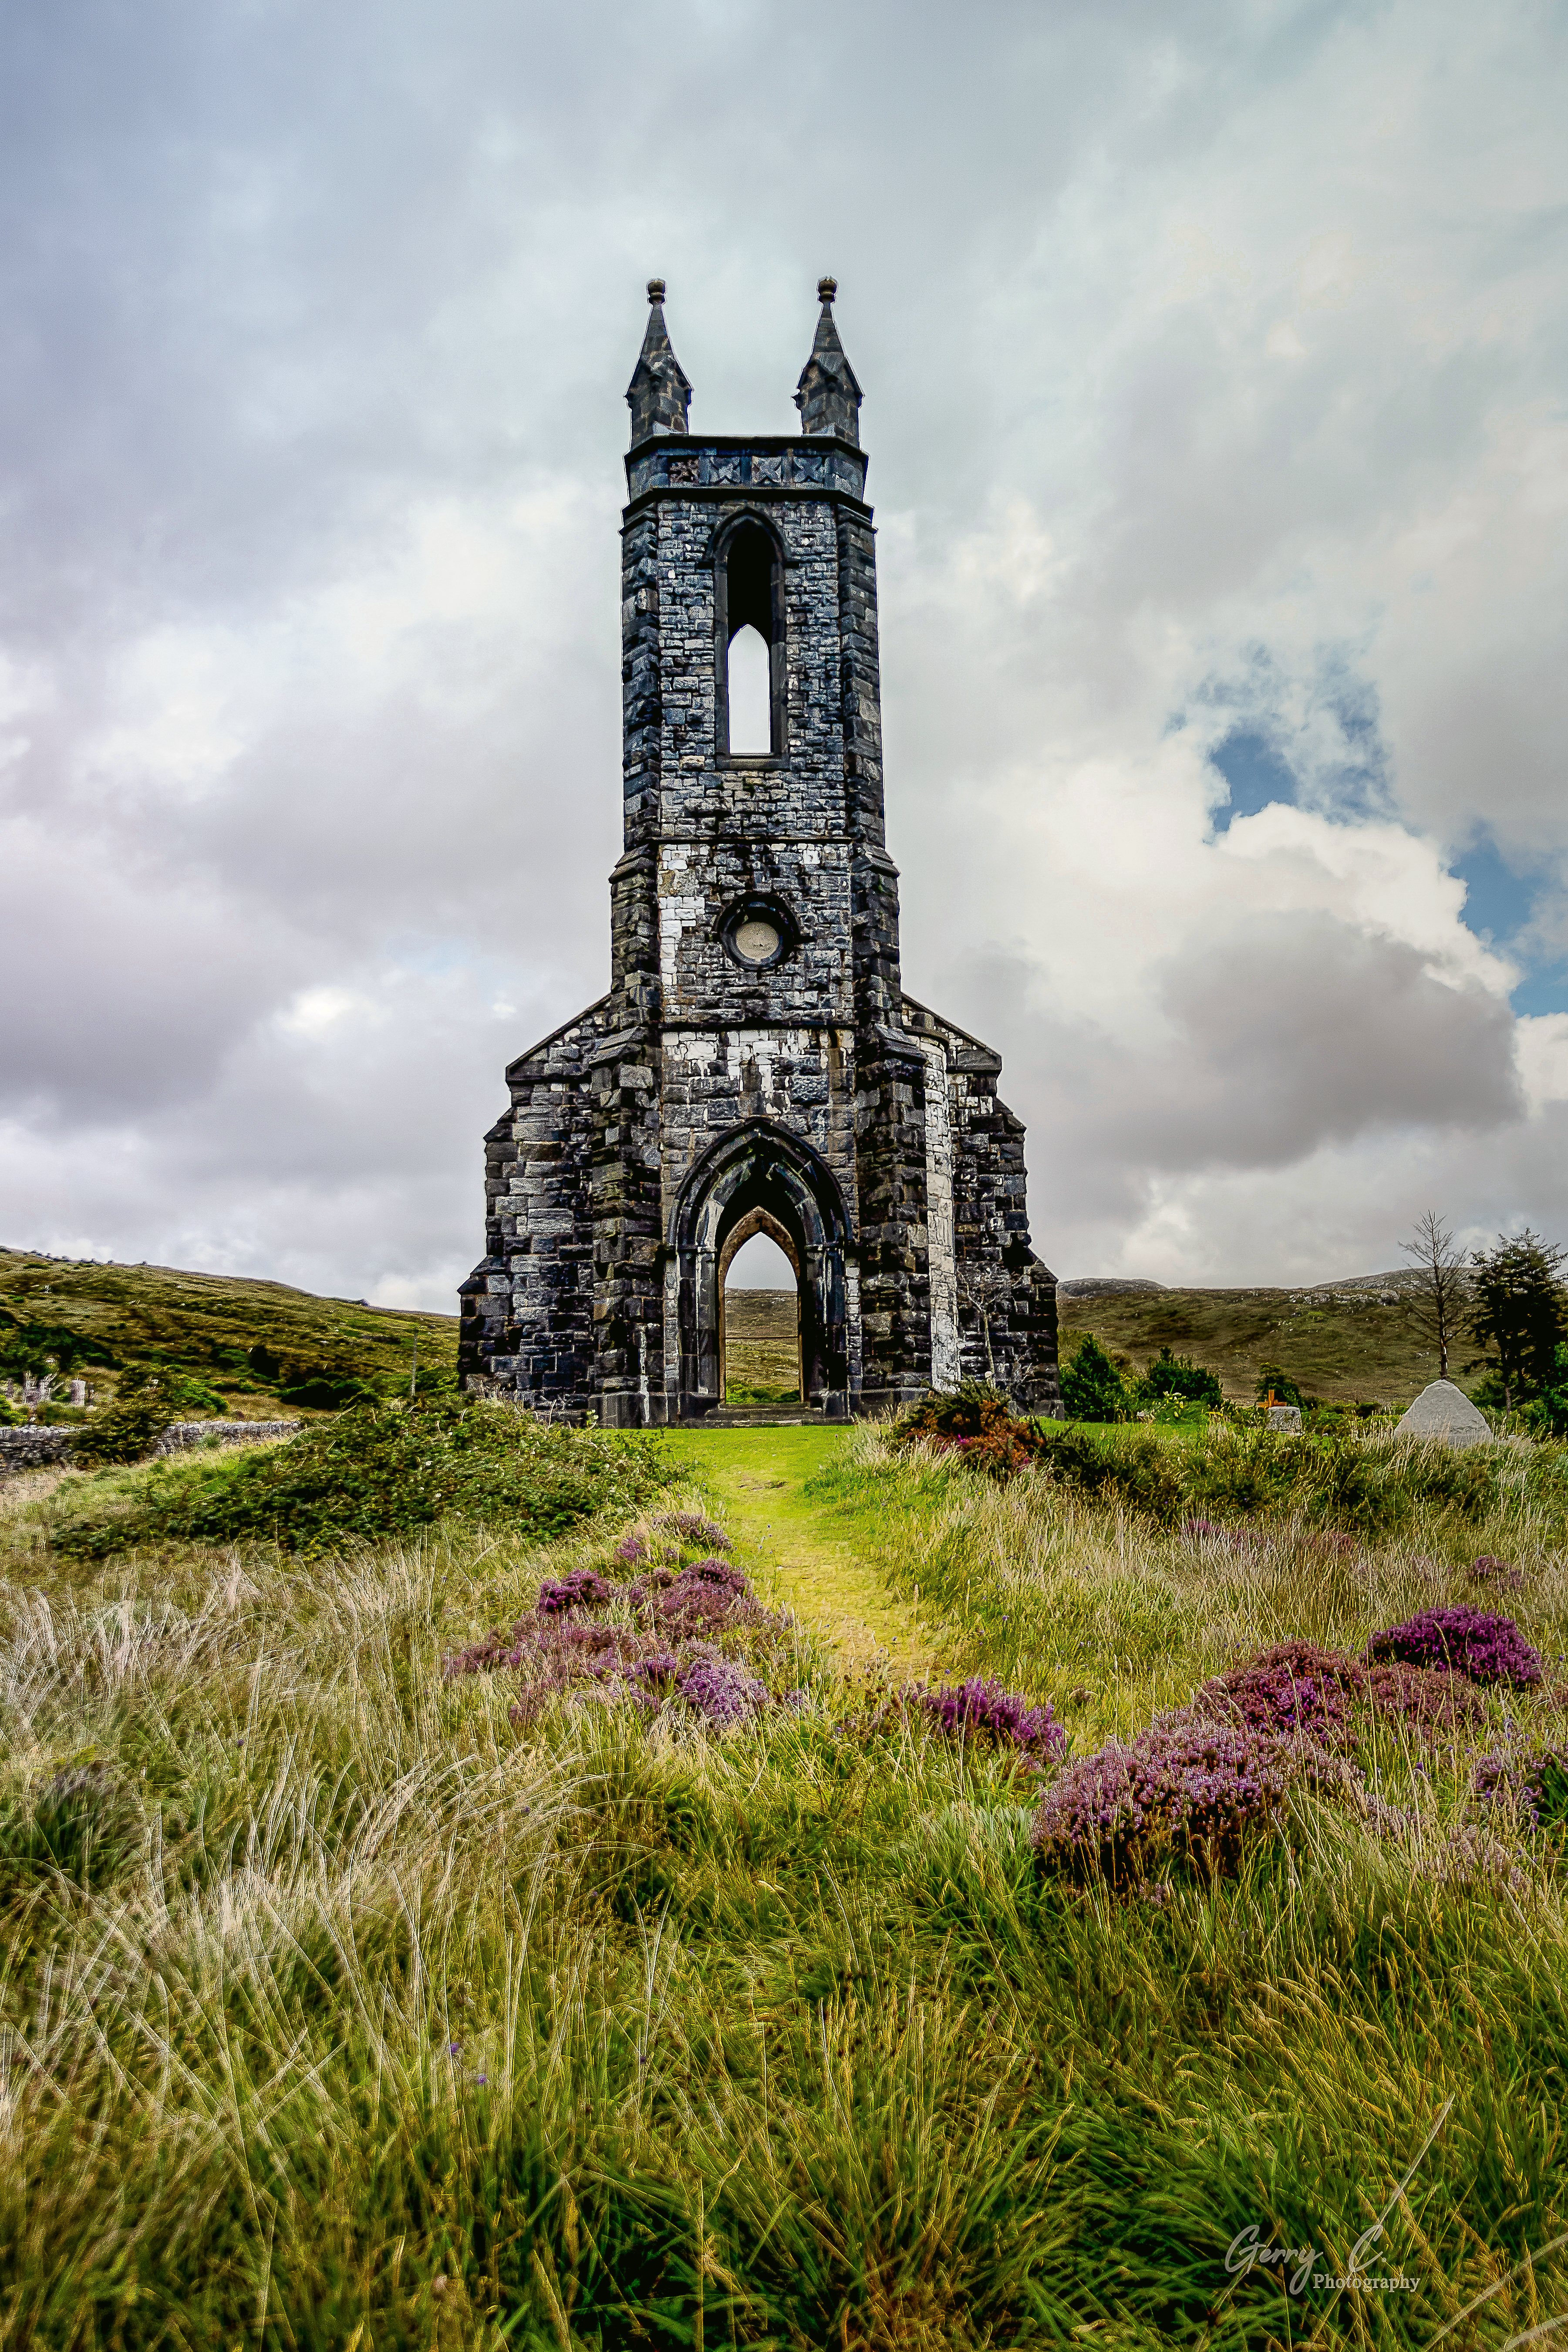 The Old Church at Dunlewey, Co. Donegal